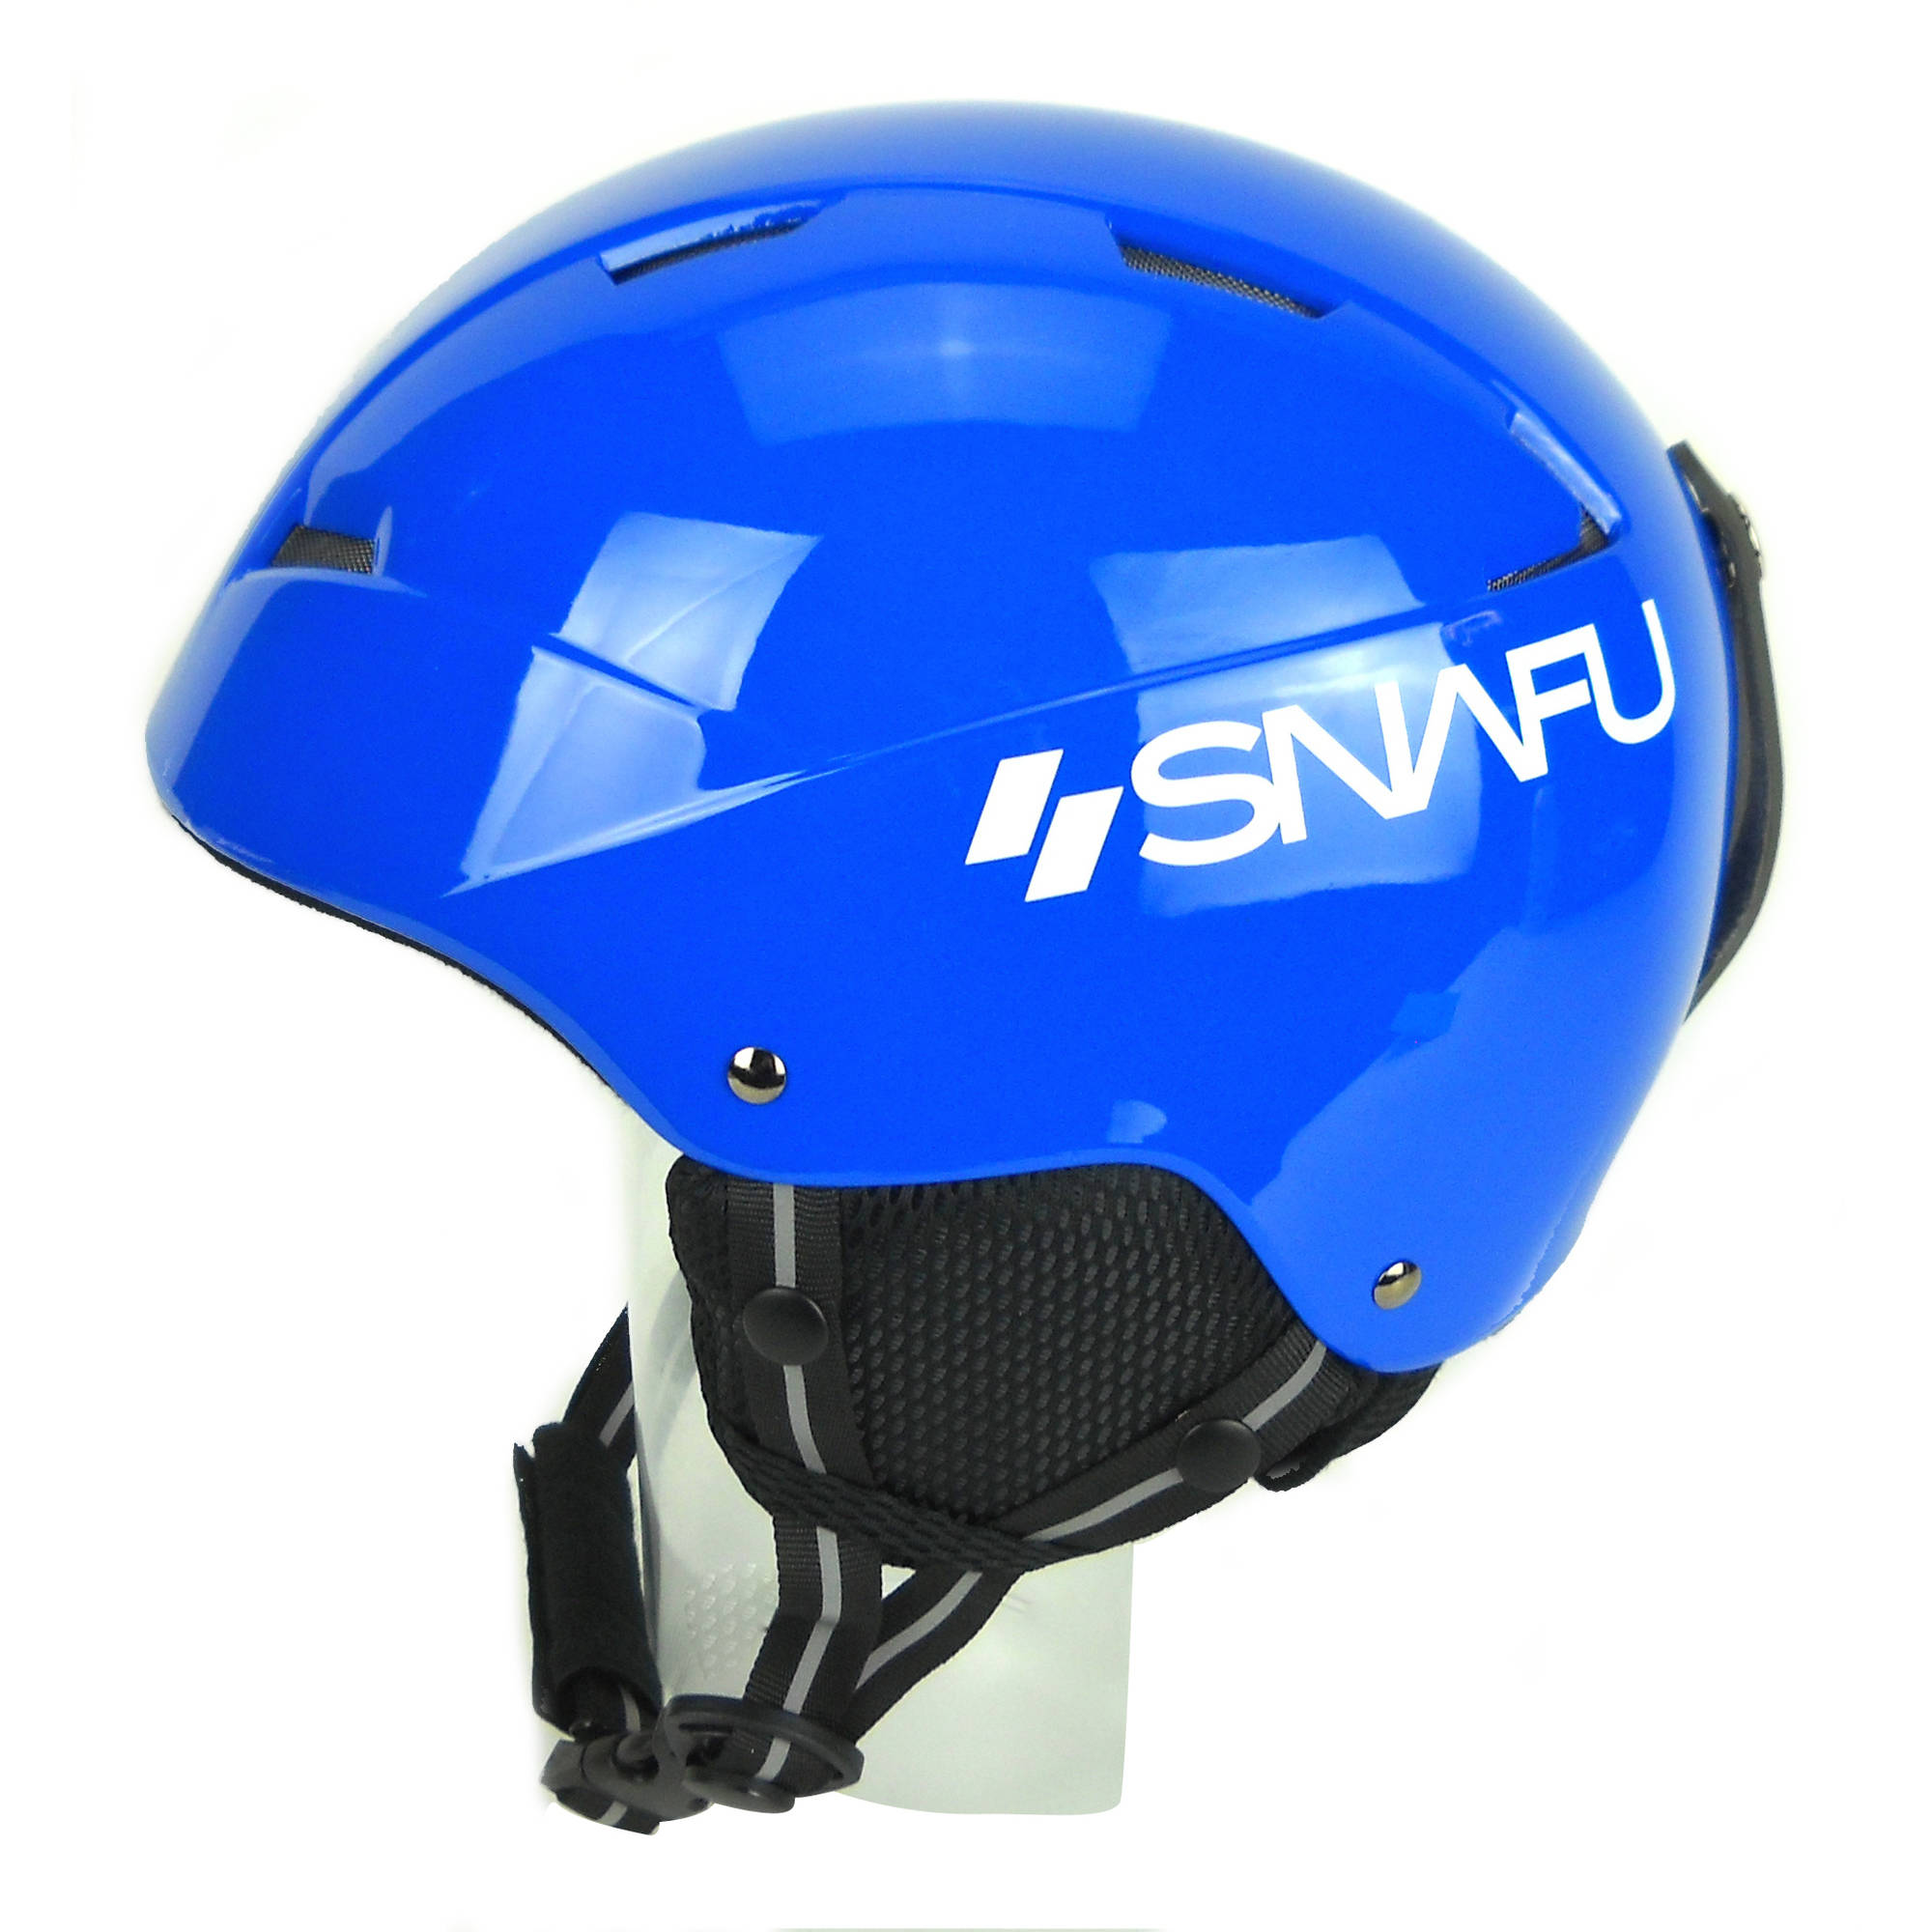 SNAFU Winter Sports Helmet, Gloss Blue, XS by